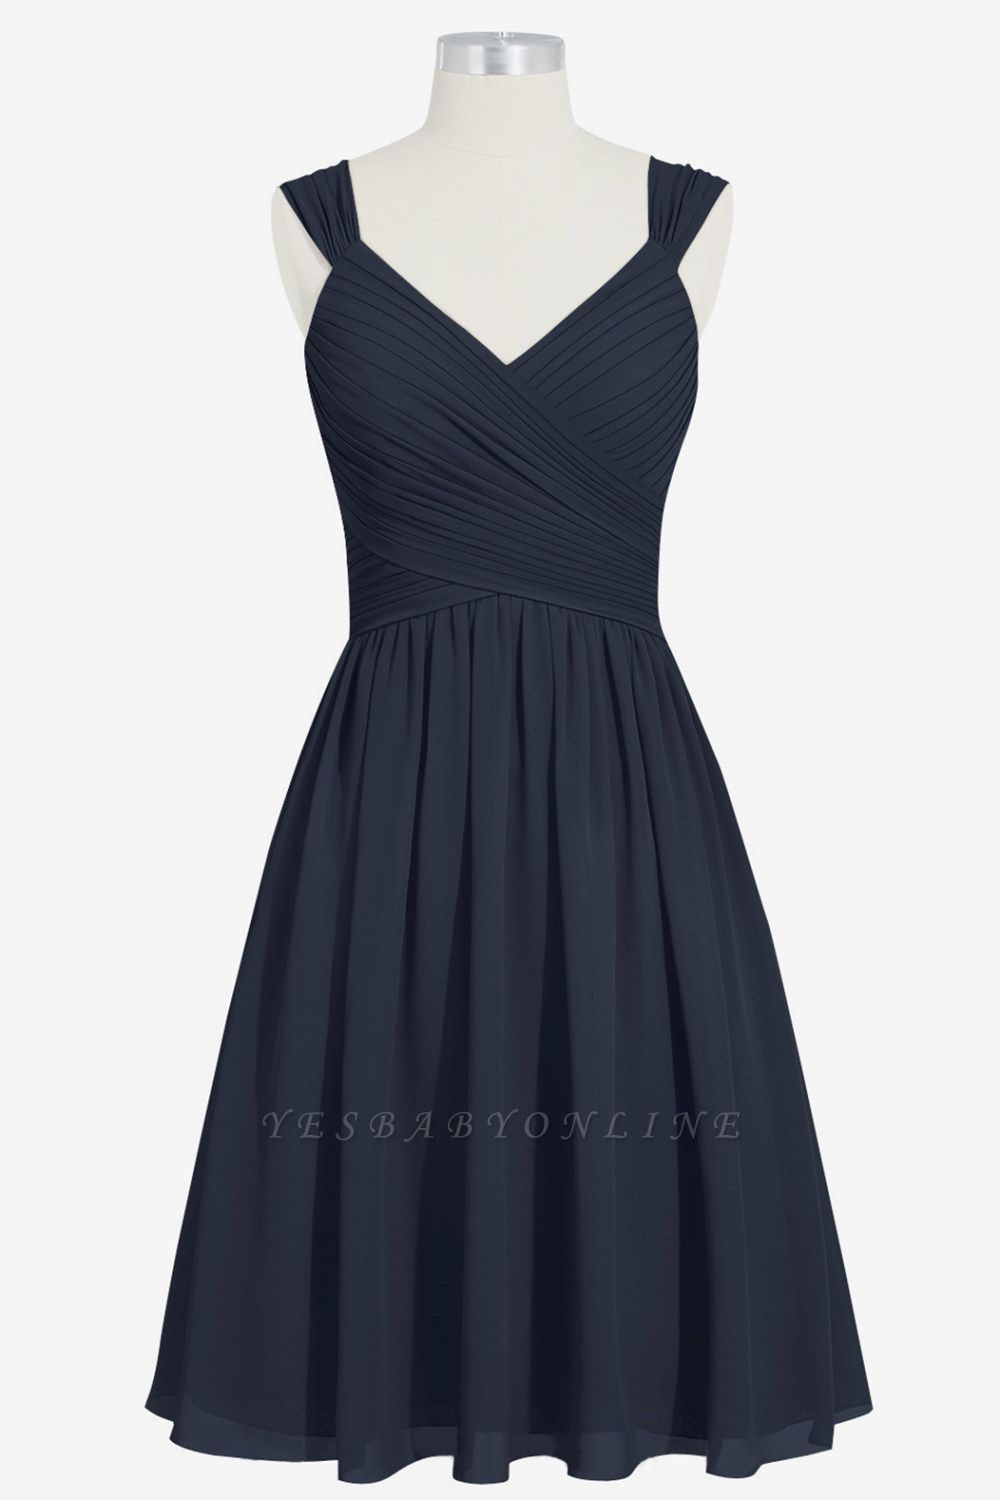 A-line Chiffon Ruffle Two Straps knee Length Bridesmaid Dresses